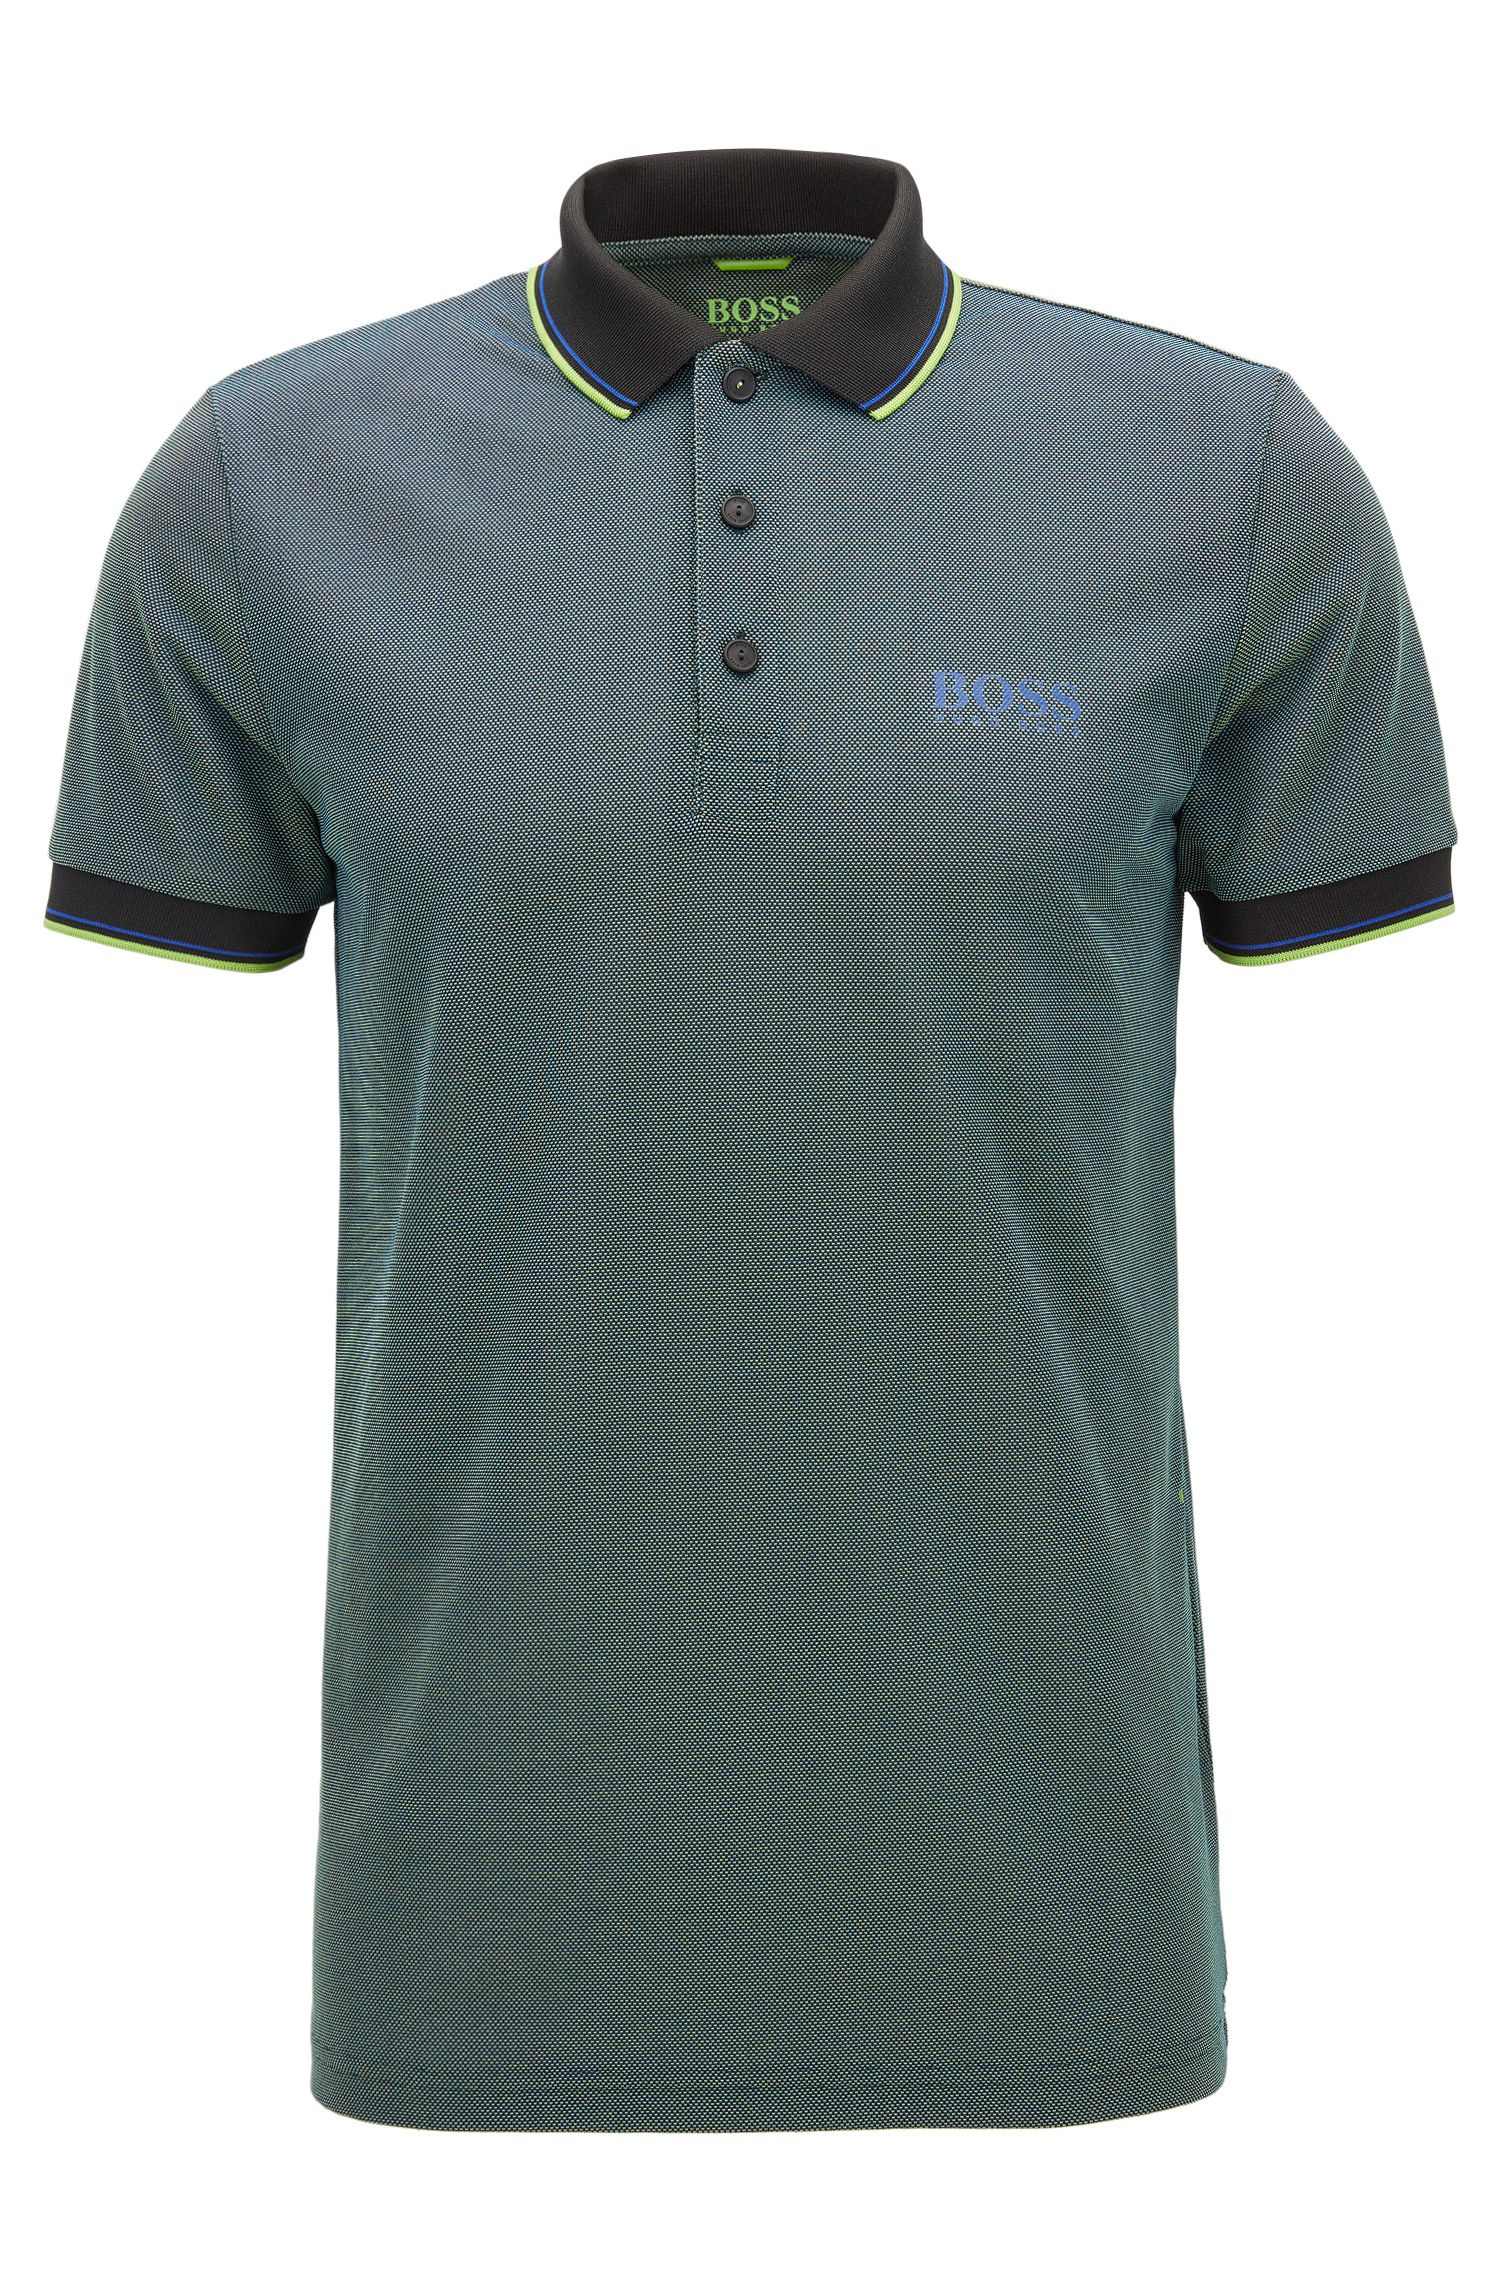 Polo slim fit en tejido transpirable